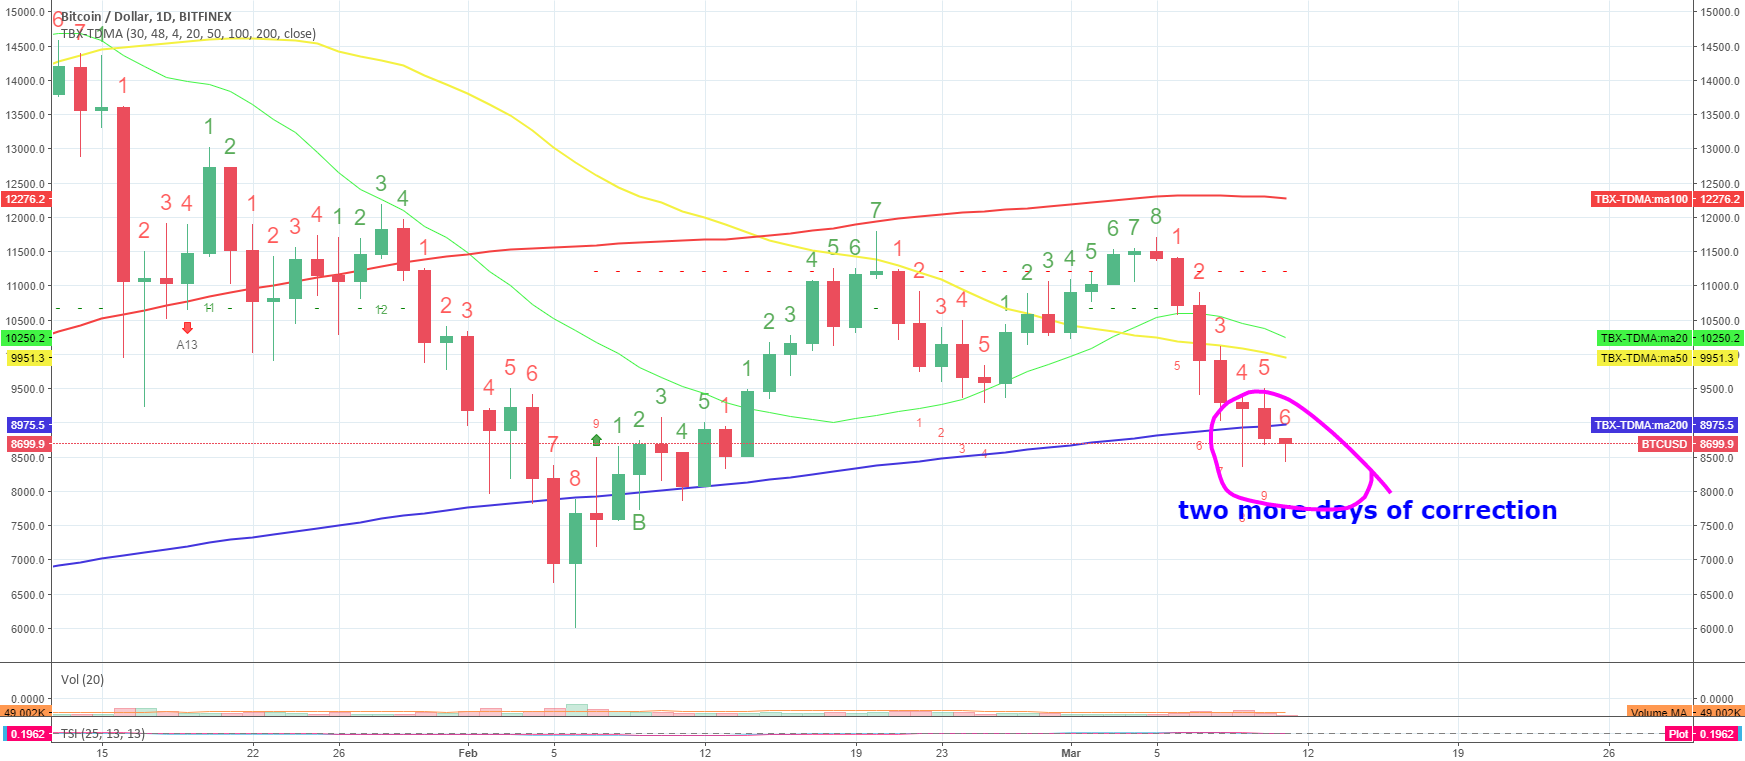 BTC 2 more days of correction